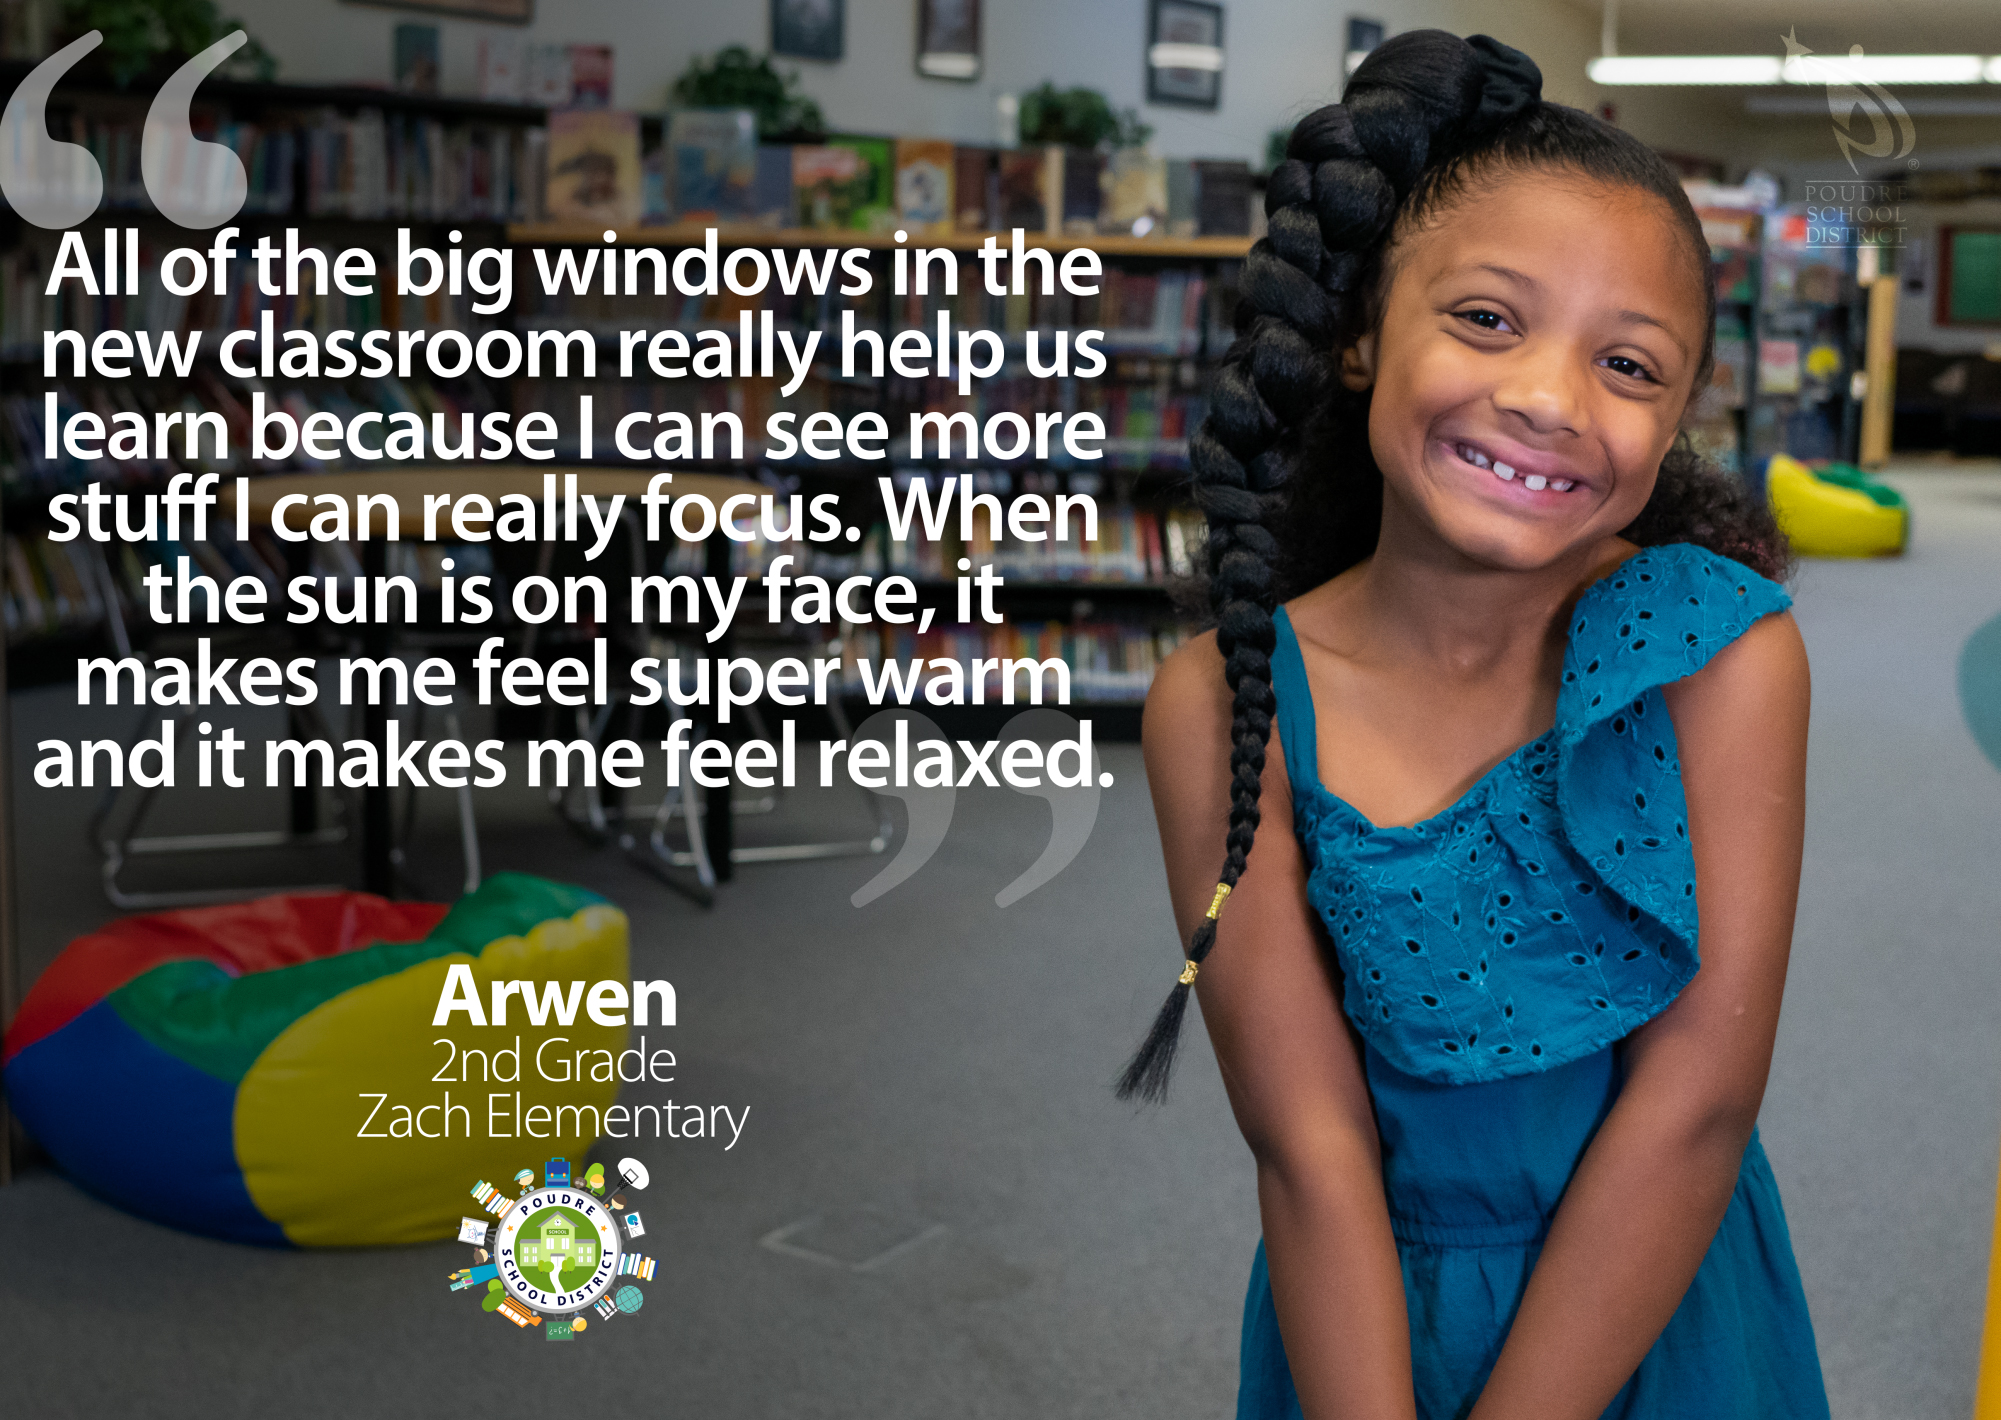 "A Zach Elementary student and quote, ""The big windows in the new classroom really help us learn because I can see more stuff and I can really focus. When the sun is on my face, it makes me feel super warm and it makes me feel relaxed."